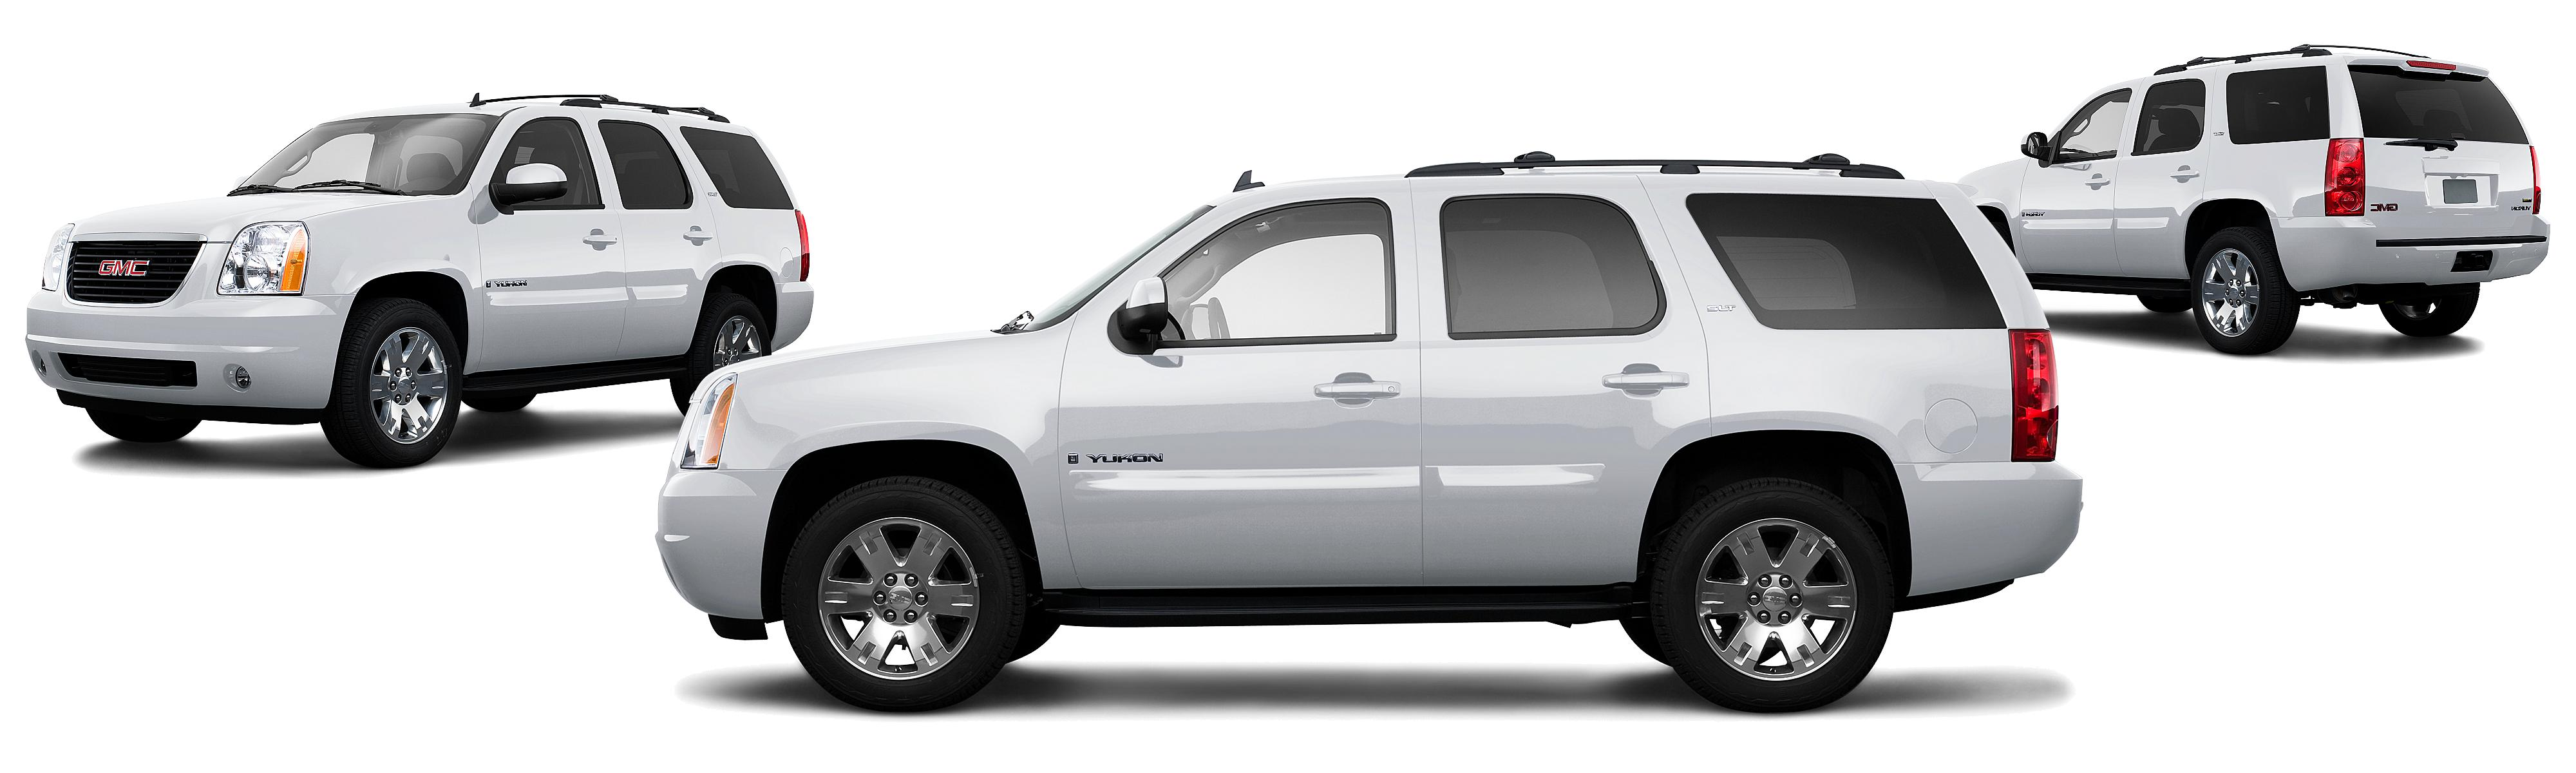 jan help detail profile us content raise new pages news to image home en additions yukon gmc s lineup denali media img